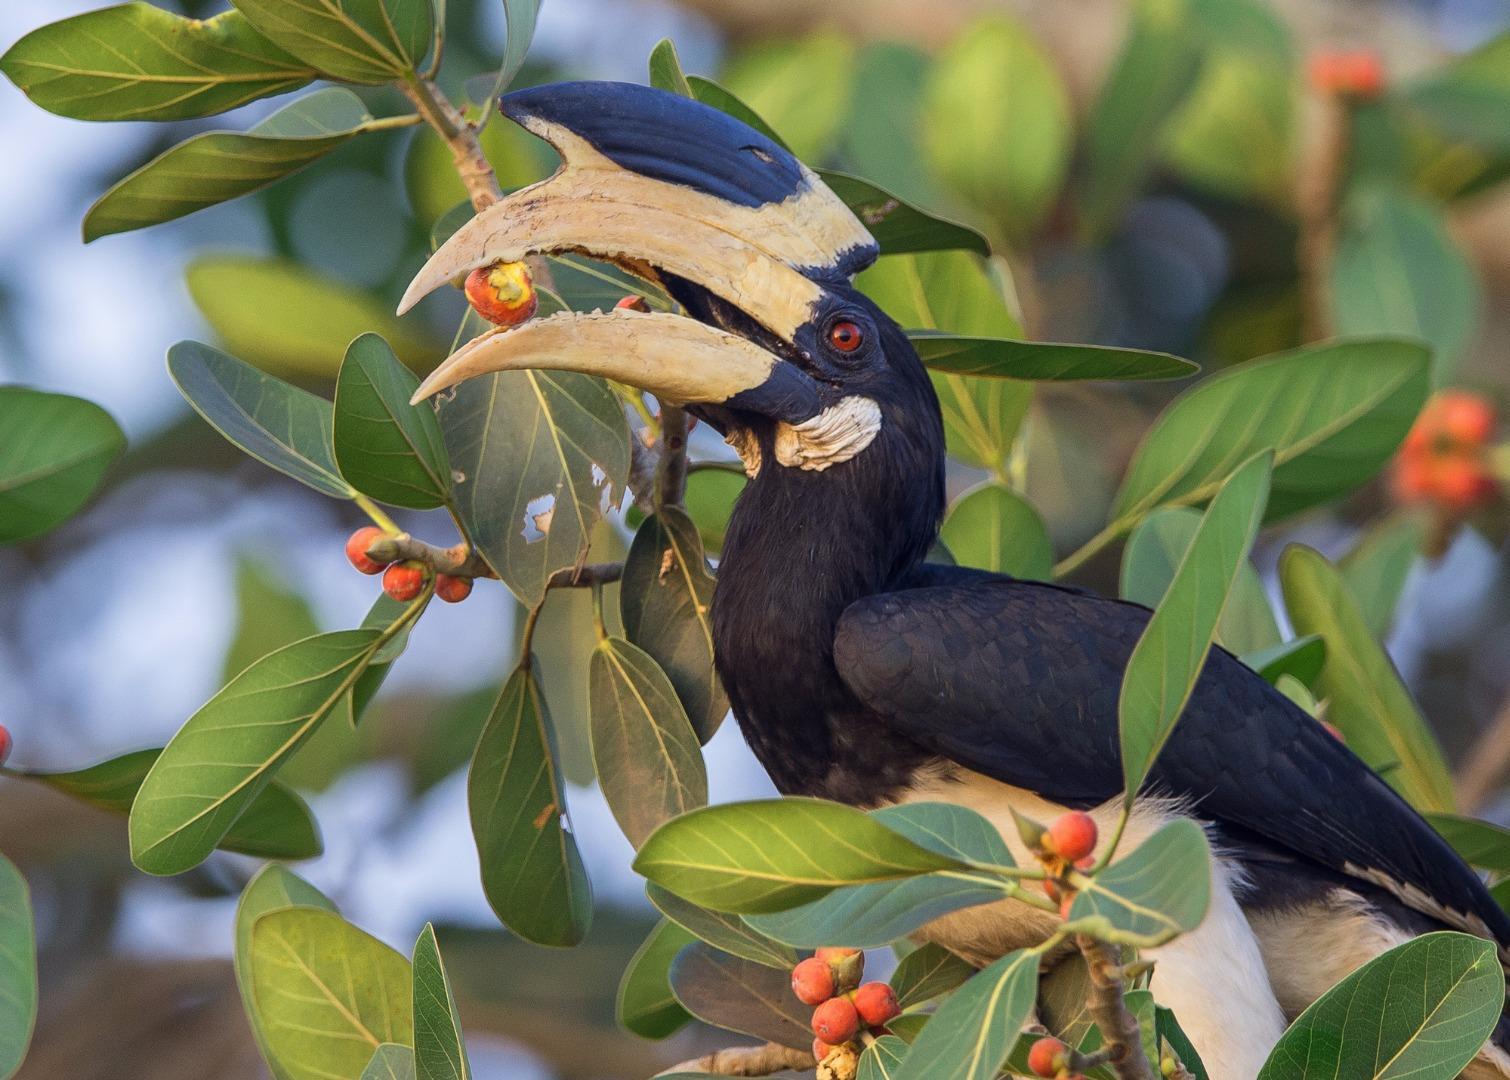 Malabar Pied Hornbill with the feed